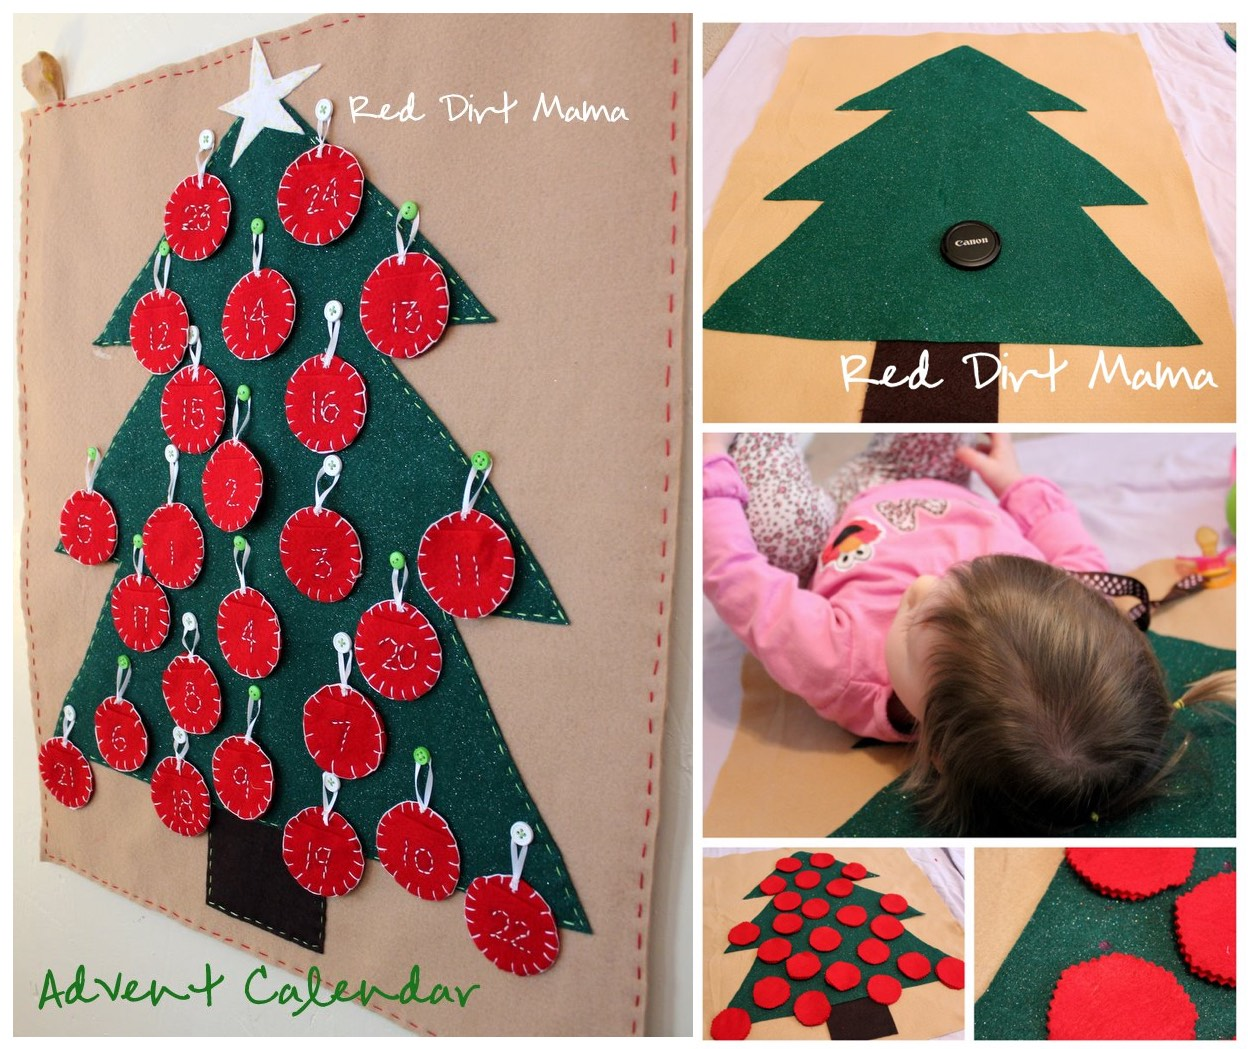 Diy Calendar For Kids : Top ideas for the best diy advent calendar kids